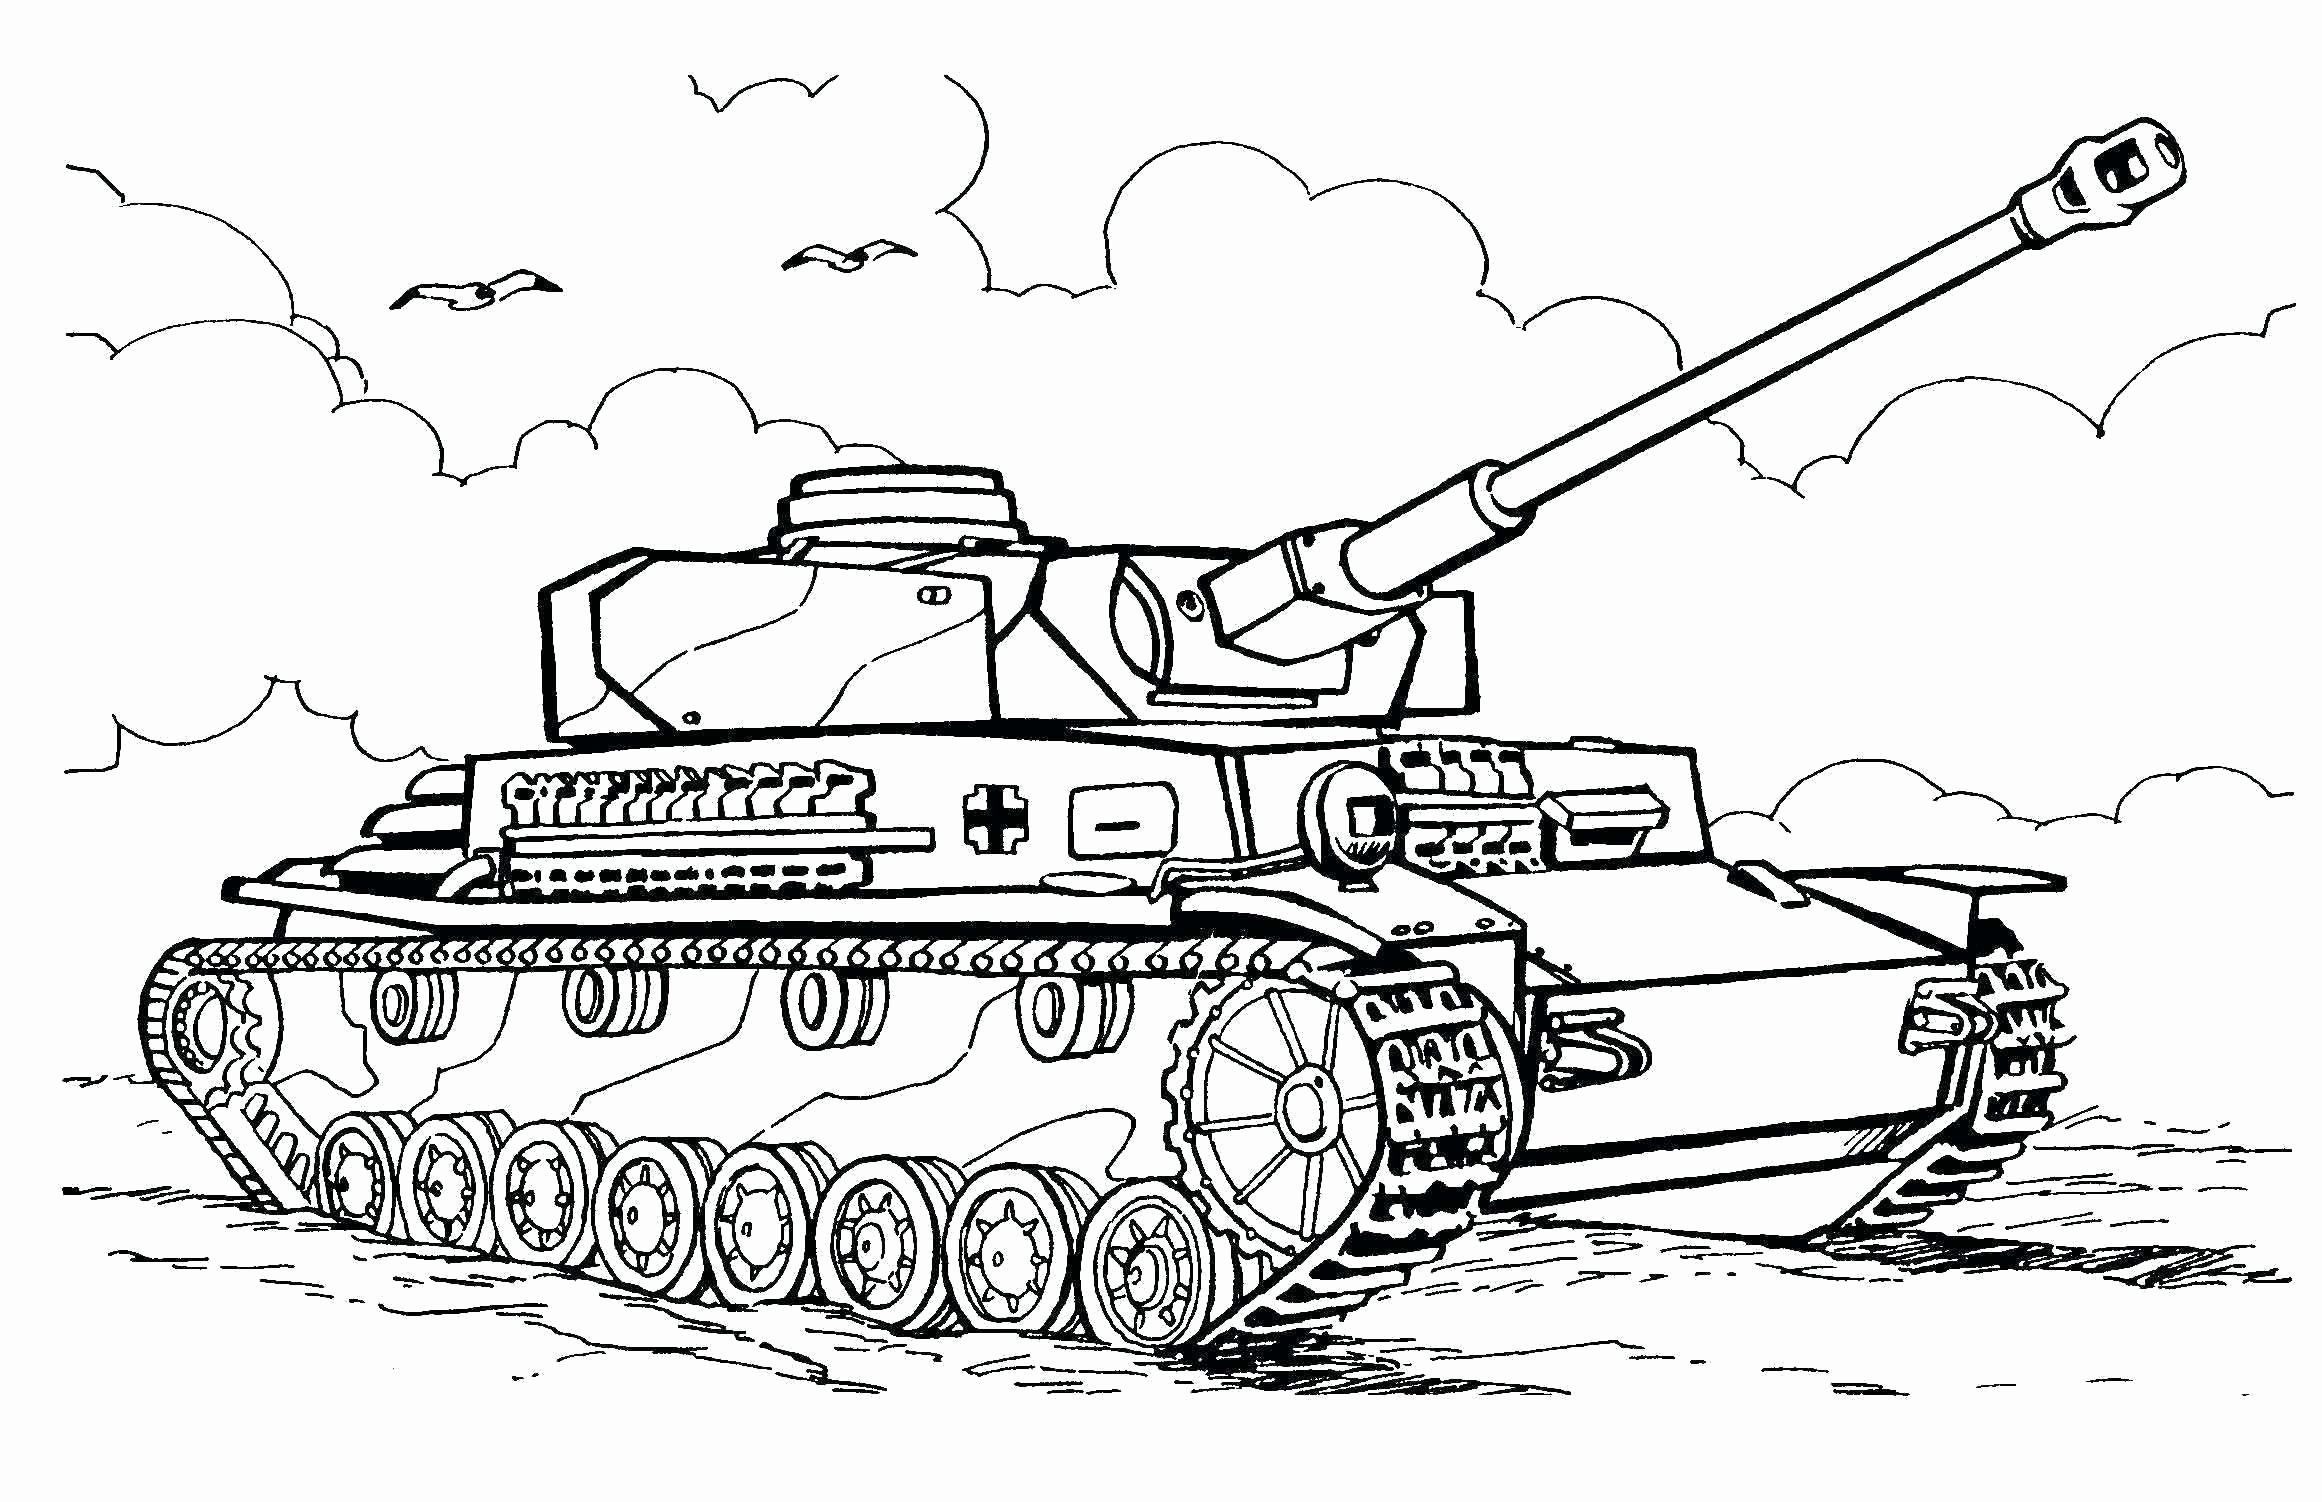 Military Hummer Coloring Pages Luxury Printable Coloring Pages Army Tanks Outpostsheet Tank Drawing Coloring Pages Coloring Books